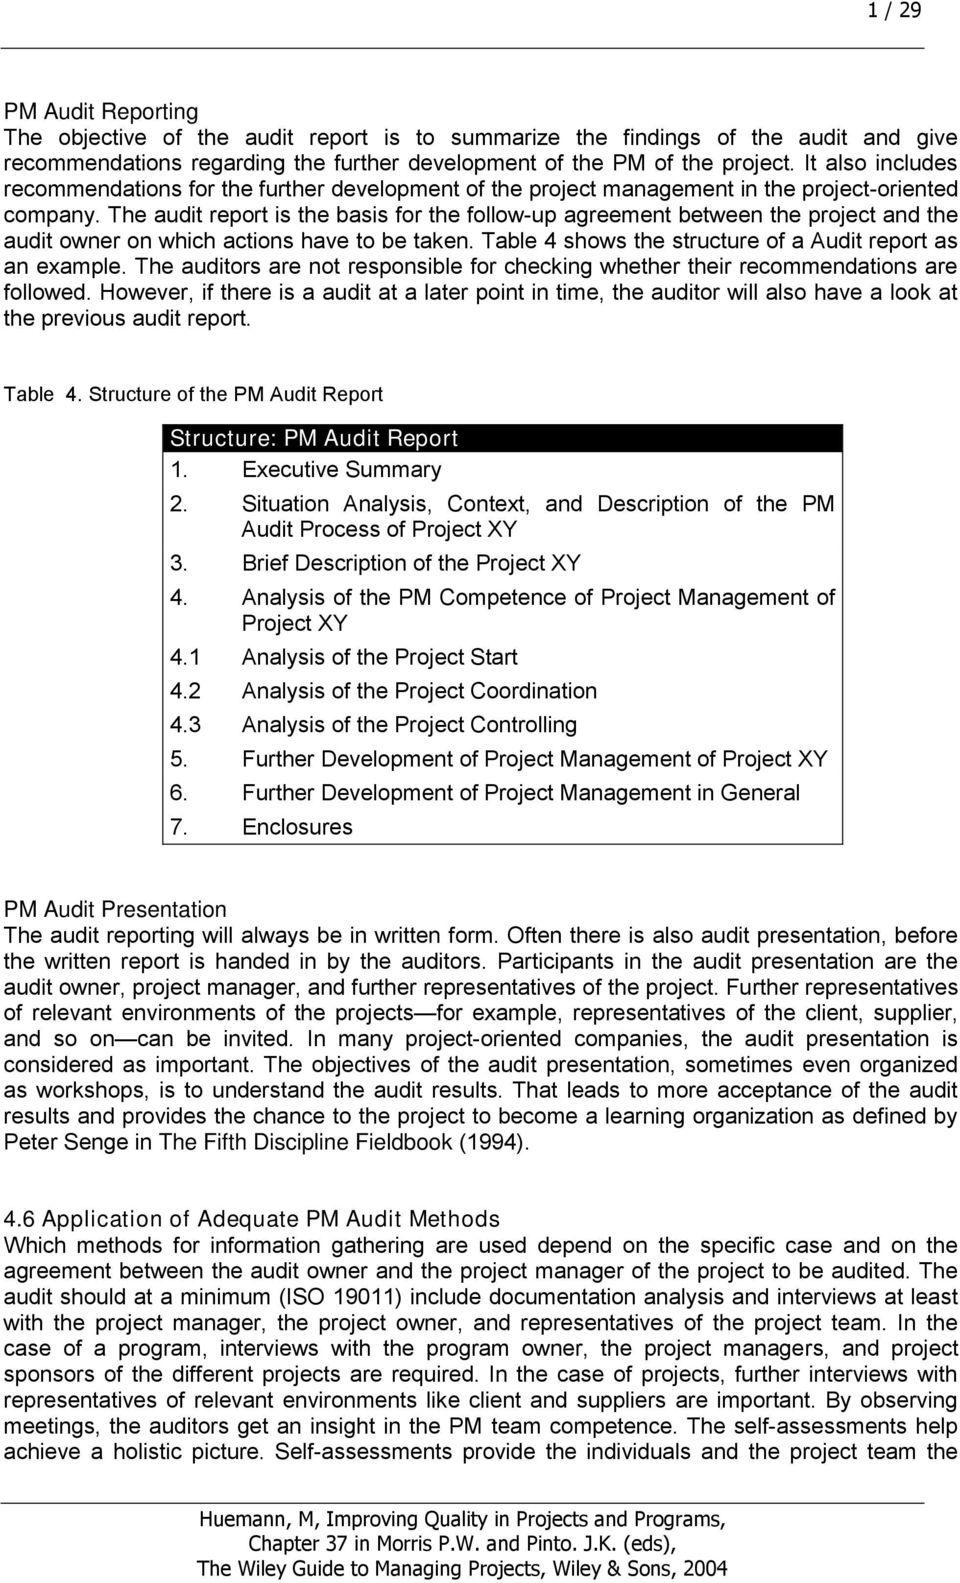 The audit report is the basis for the follow-up agreement between the project and the audit owner on which actions have to be taken. Table 4 shows the structure of a Audit report as an example.